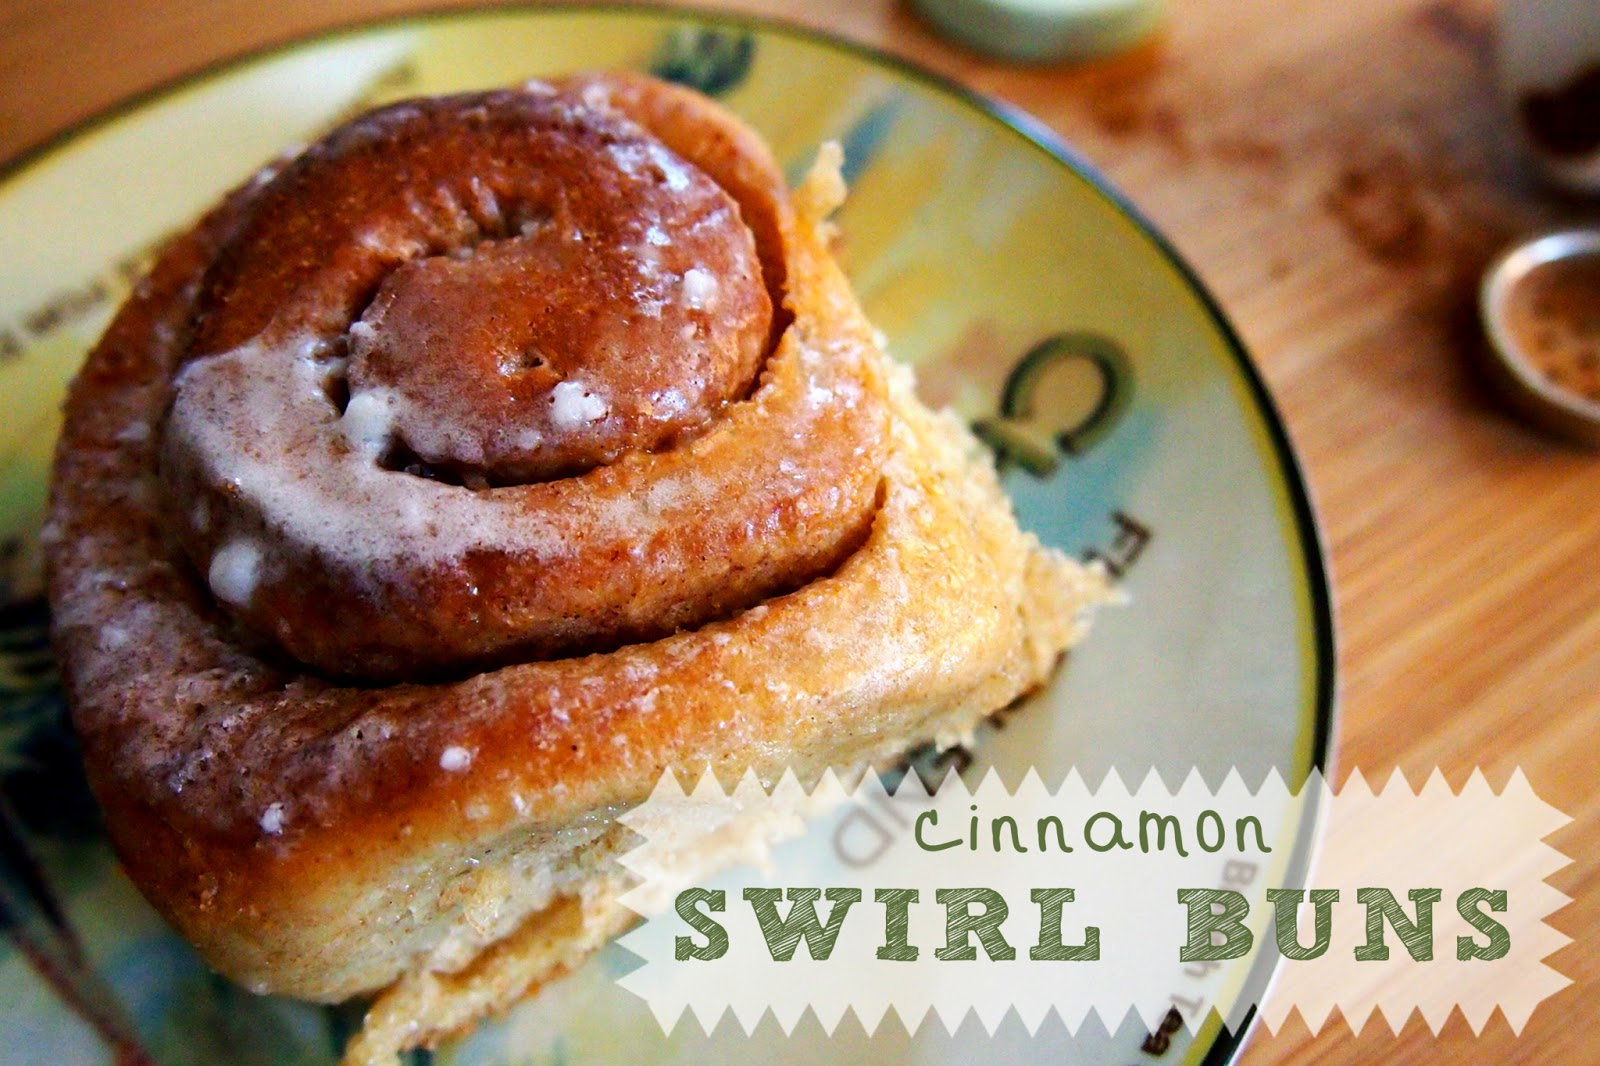 On High Occasions: Cinnamon Swirl Buns (with Icing!)